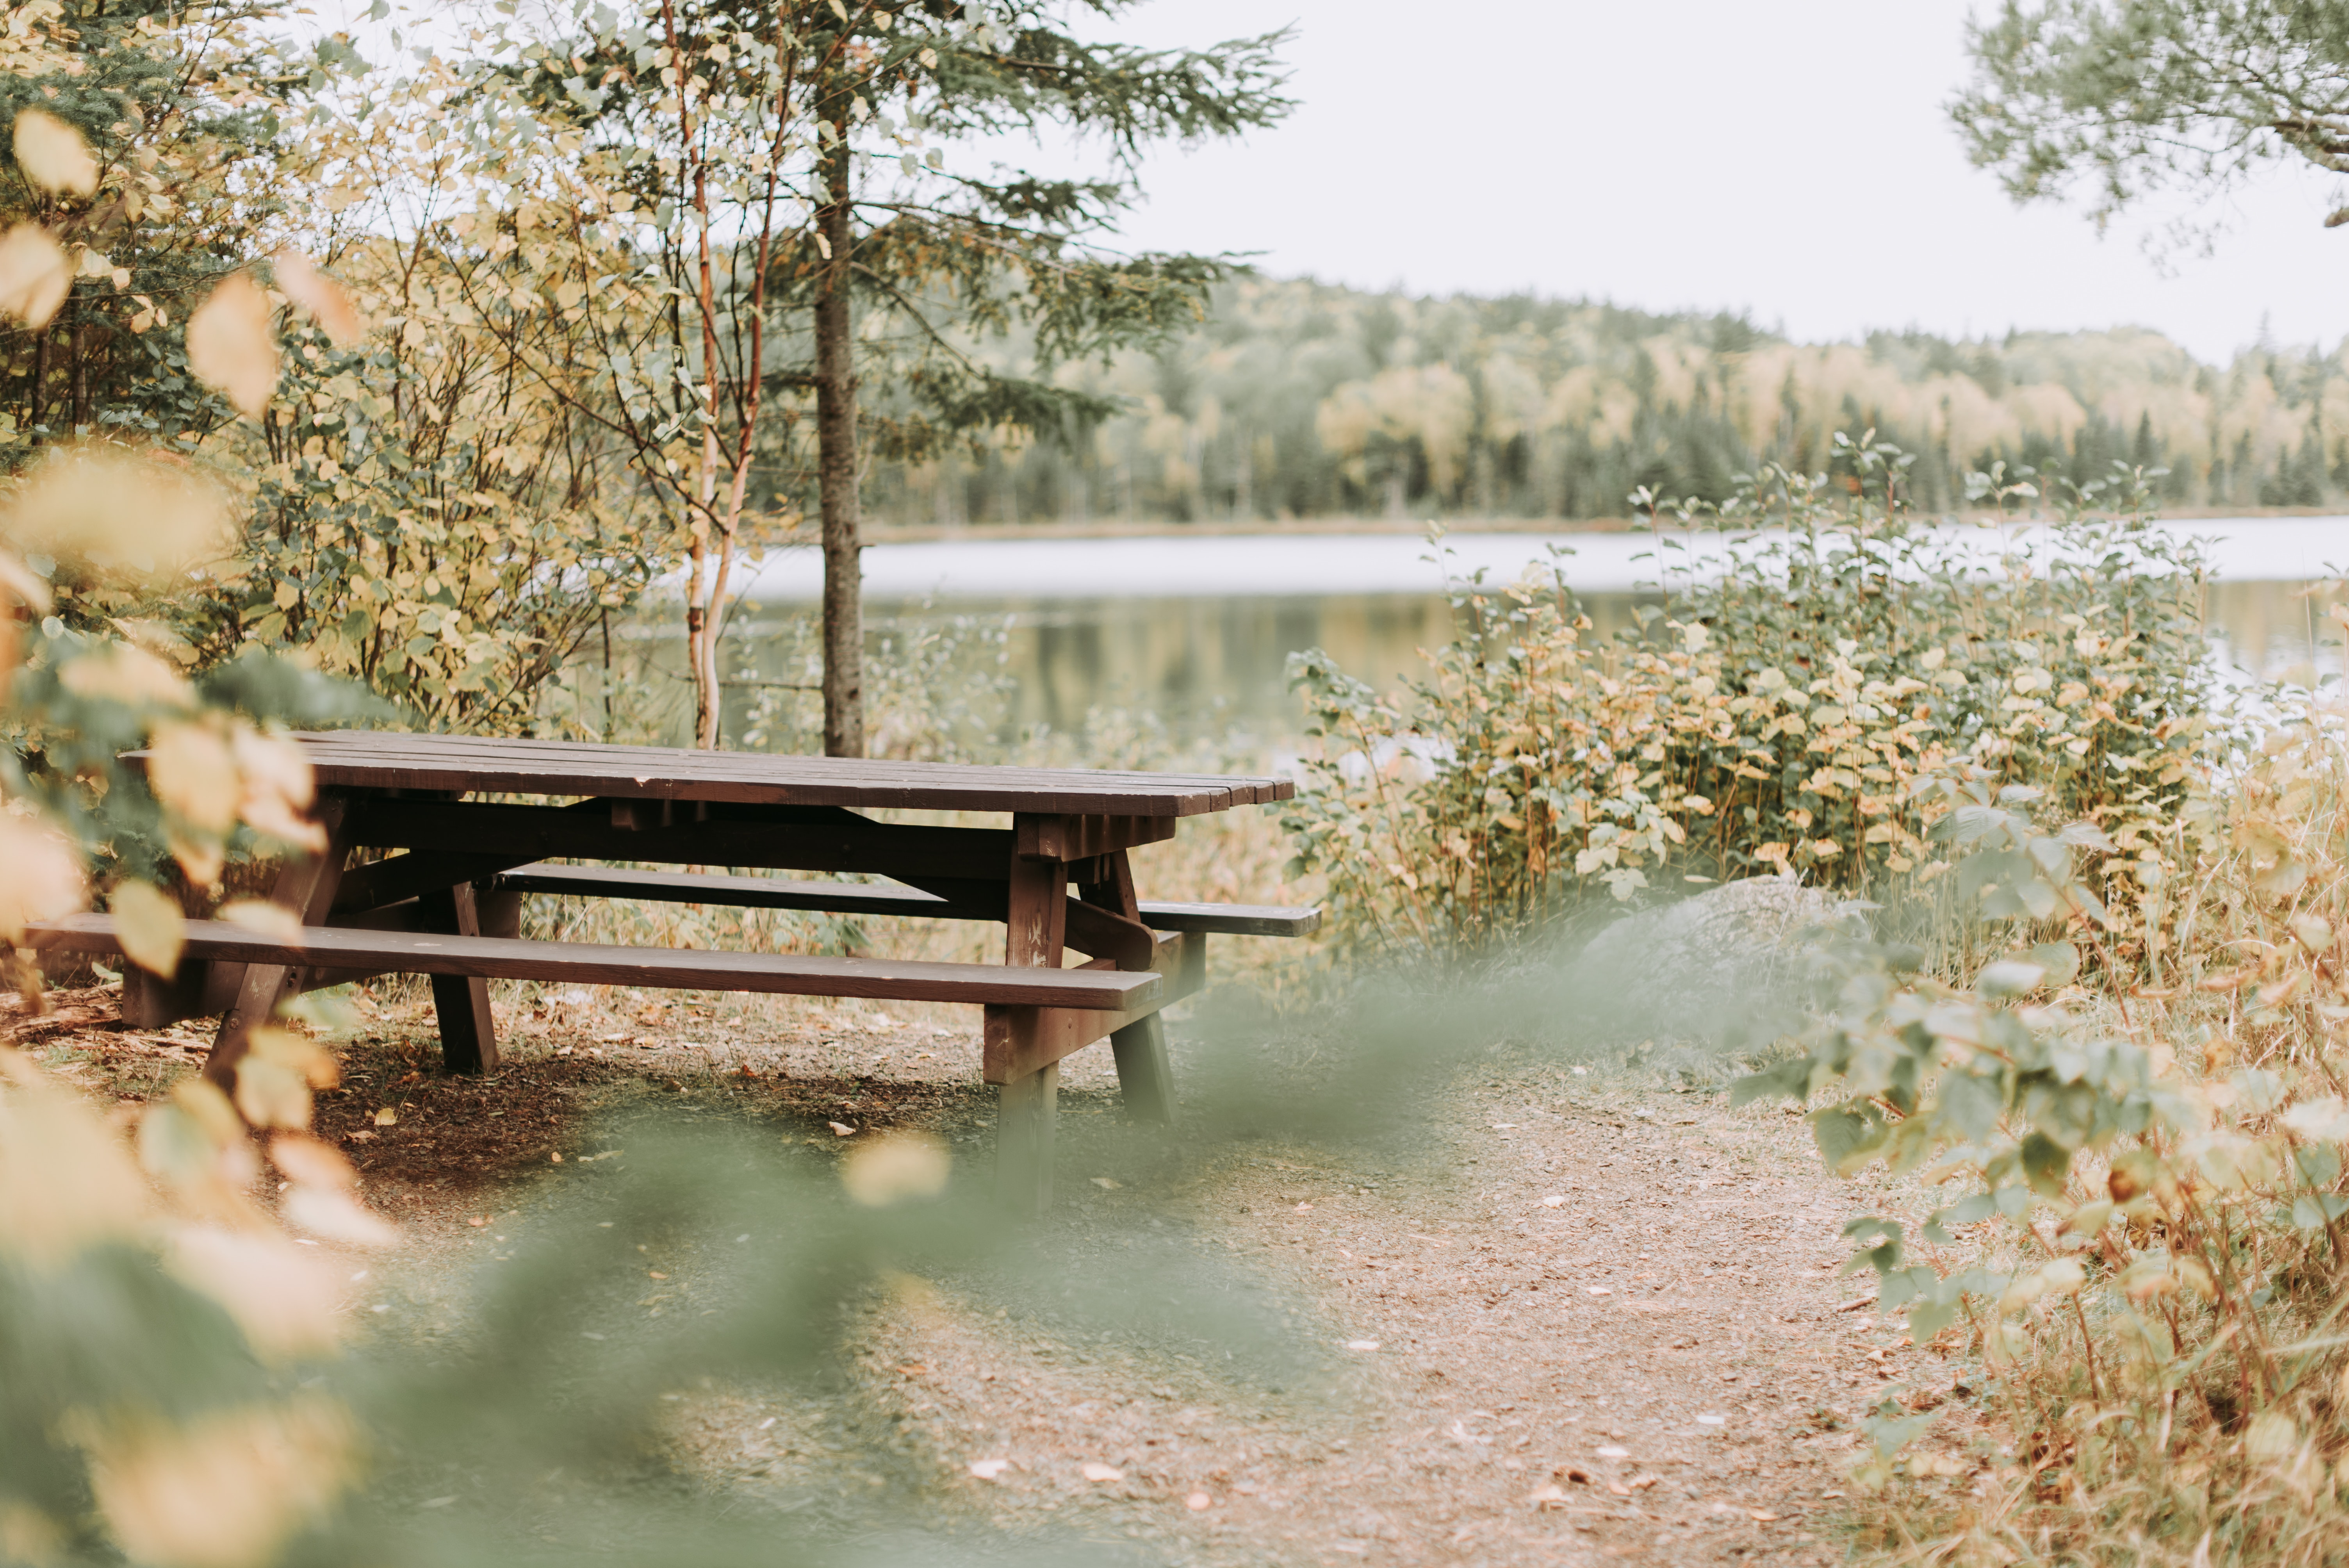 picnic table near body of water